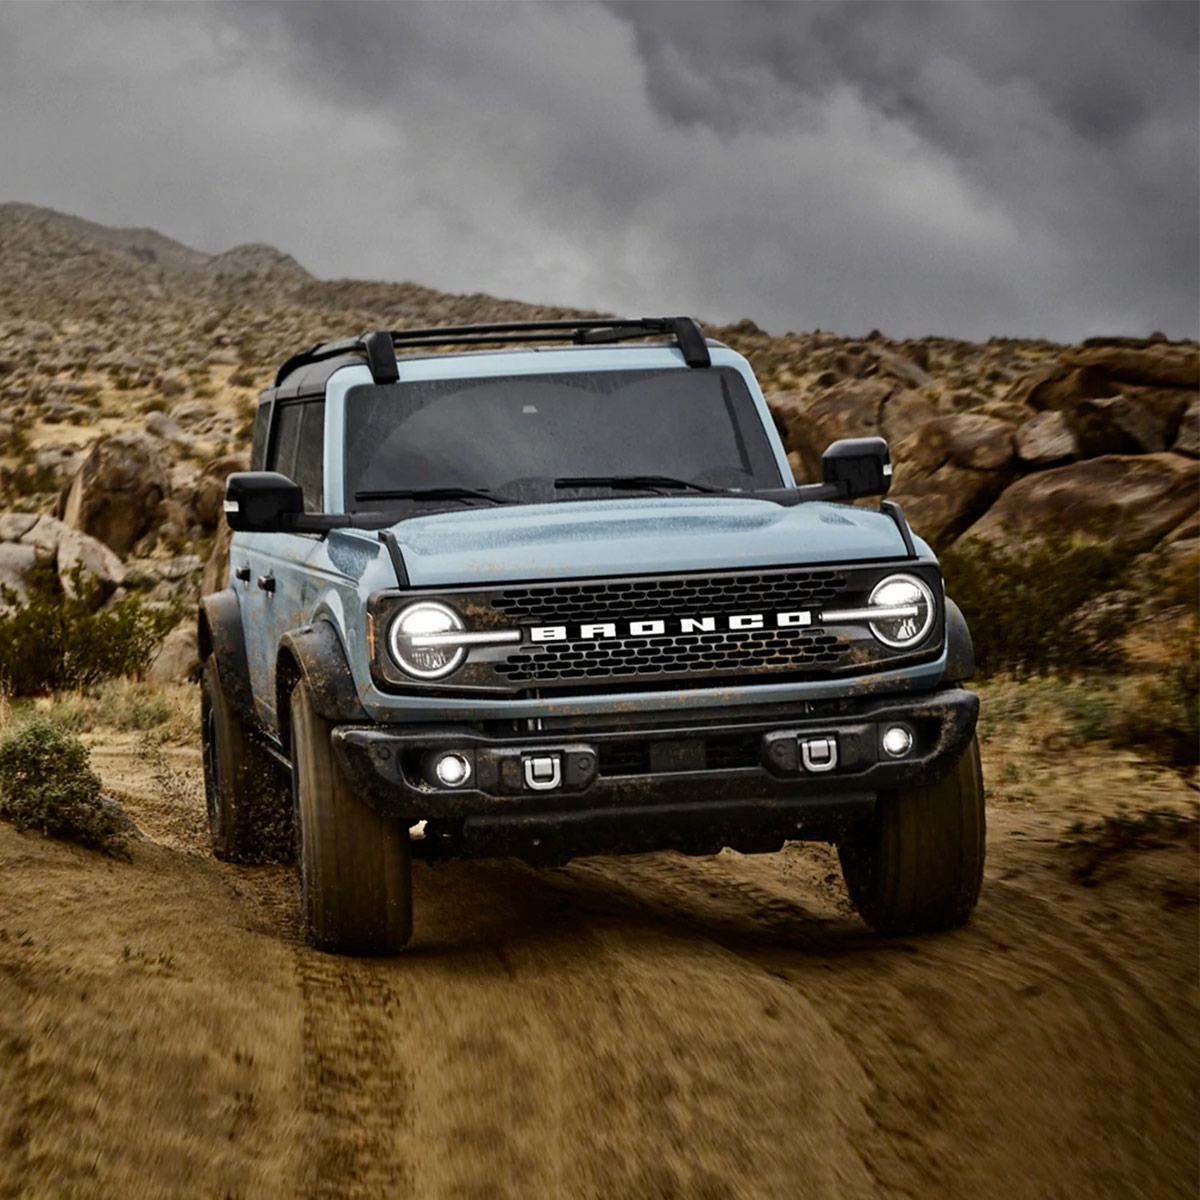 frontal profile of ford bronco in light blue color driving on a dirt terrain with rocky mountains in the background